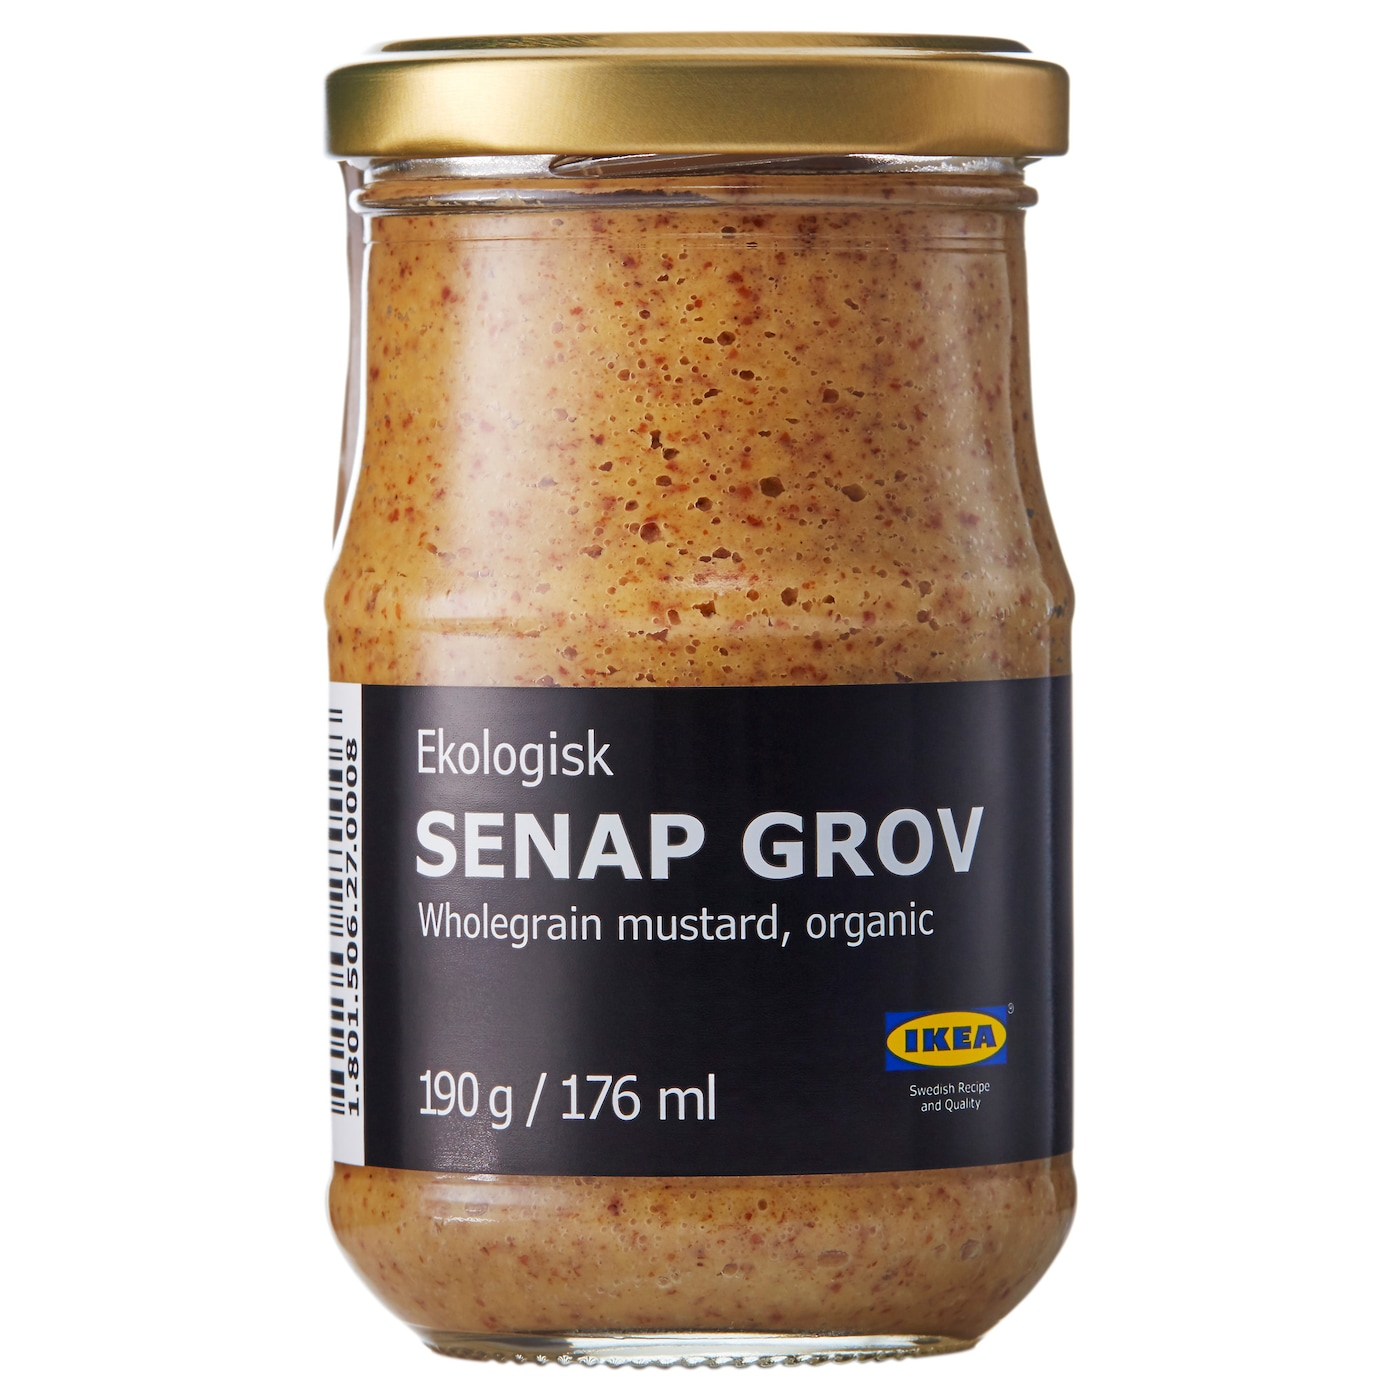 IKEA SENAP GROV whole-grain mustard